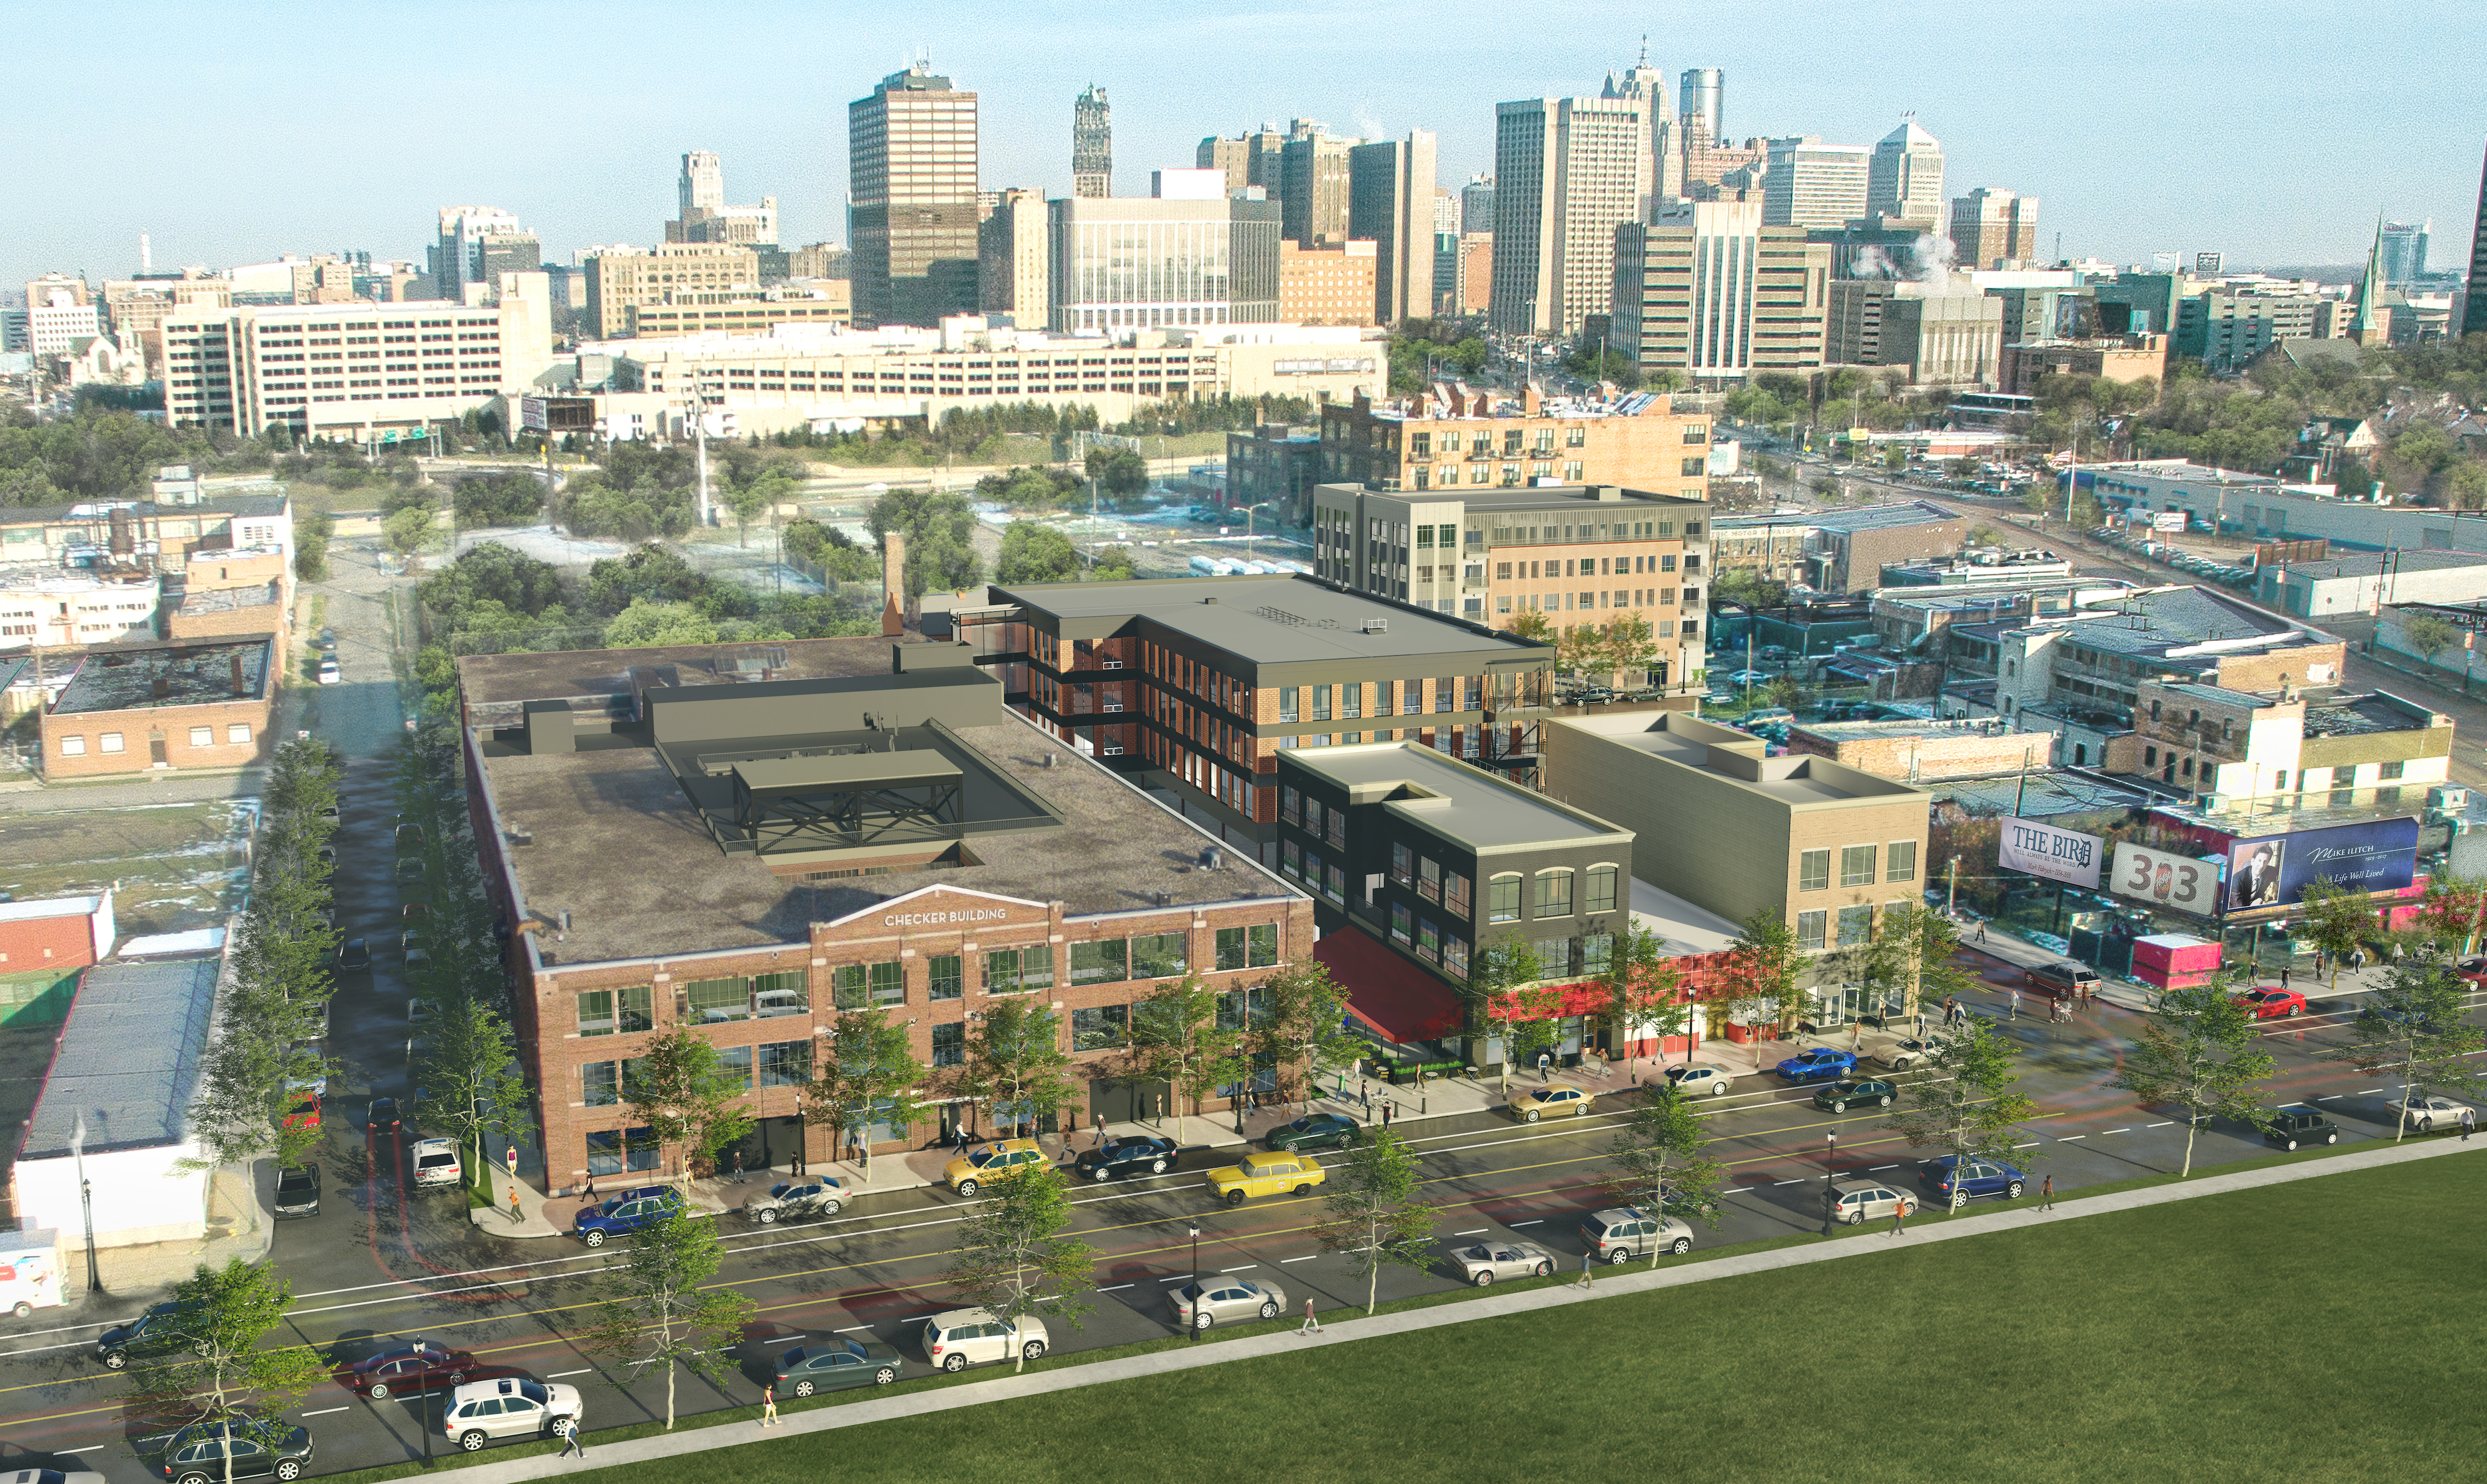 An overhead rendering of a redeveloped brick building with the downtown Detroit skyline in the background